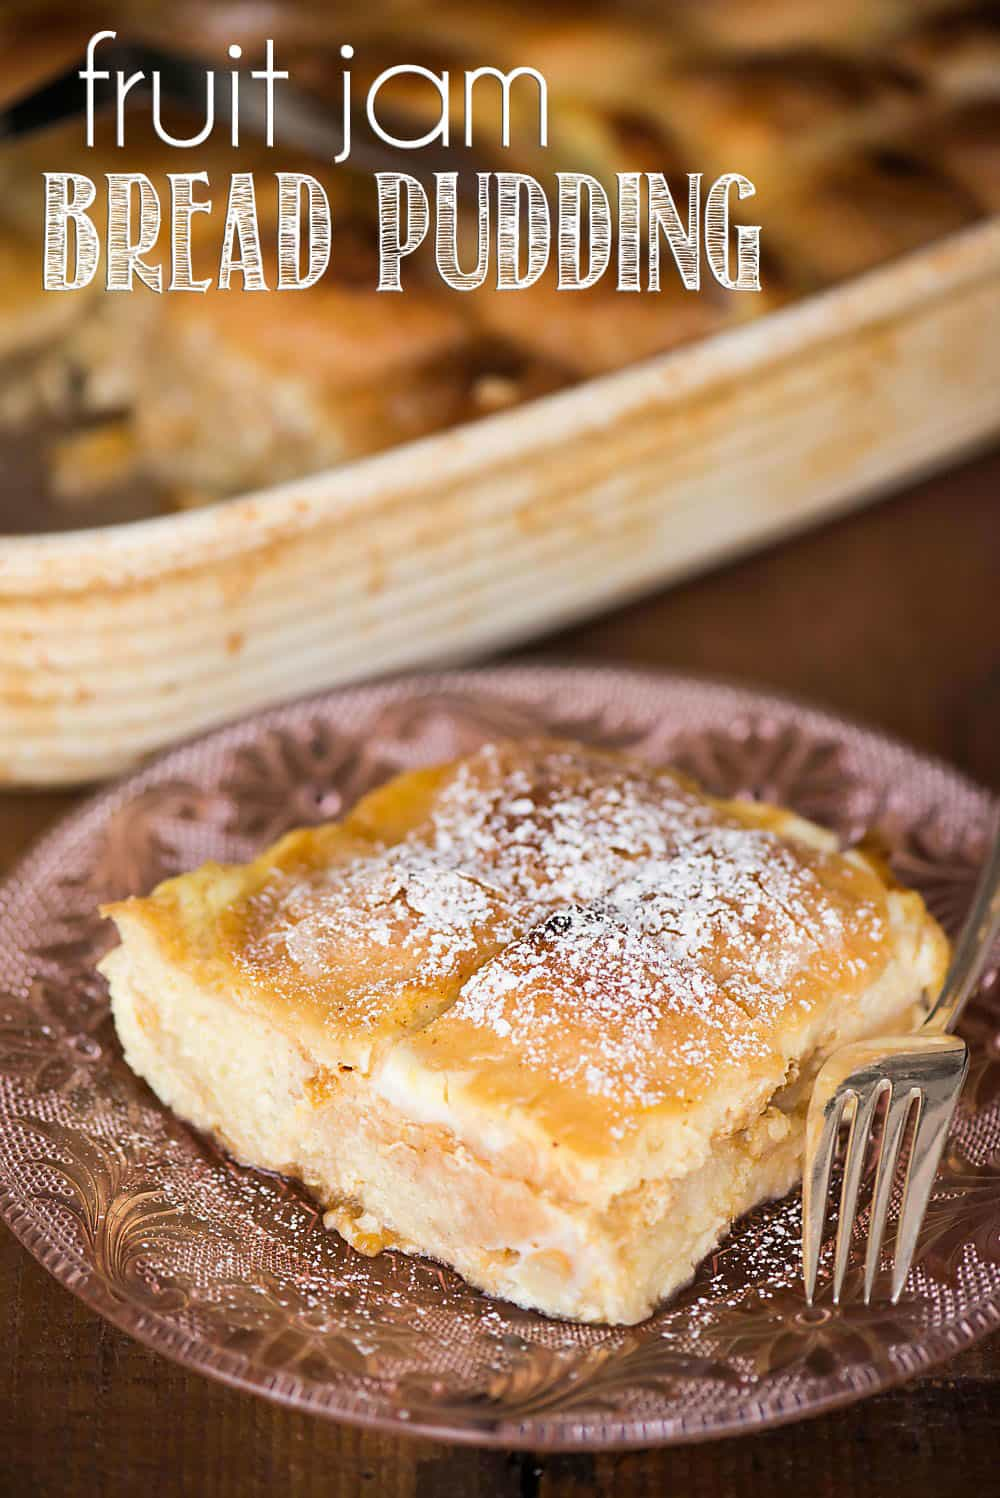 Use any of your favorite fruit jam, jelly, or preserves you have stashed away in your pantry to create this creamy decadent Fruit Jam Bread Pudding dessert.